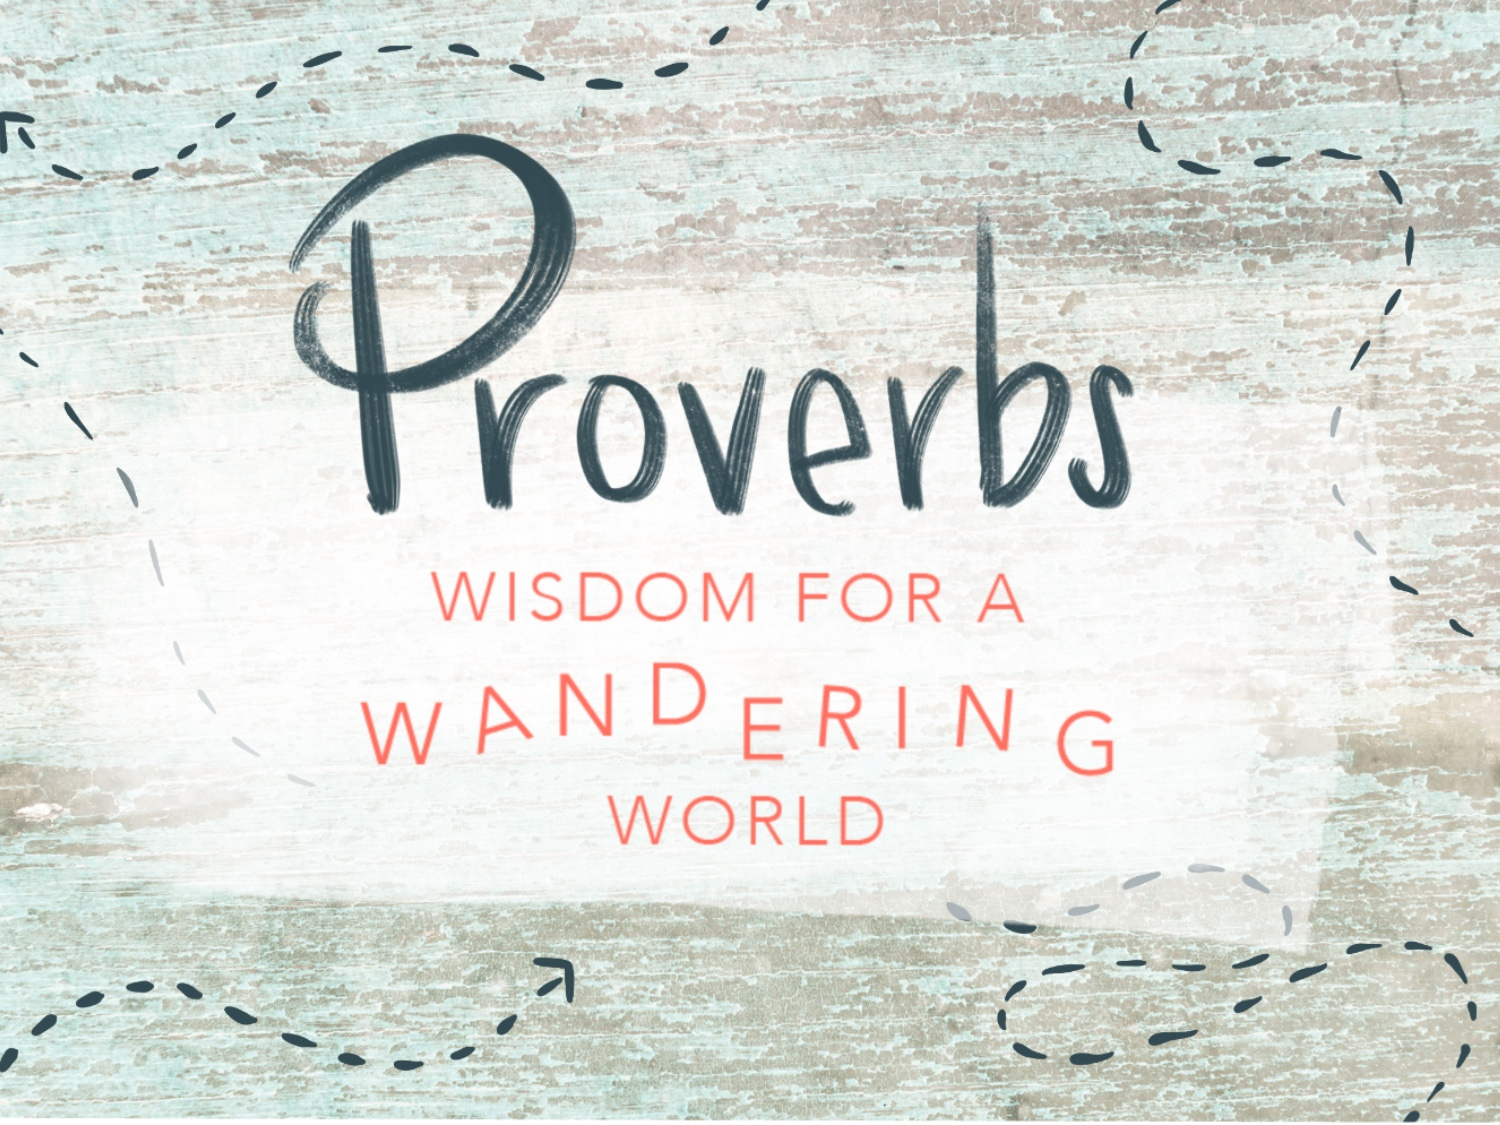 Proverbs: Wisdom for a Wandering World